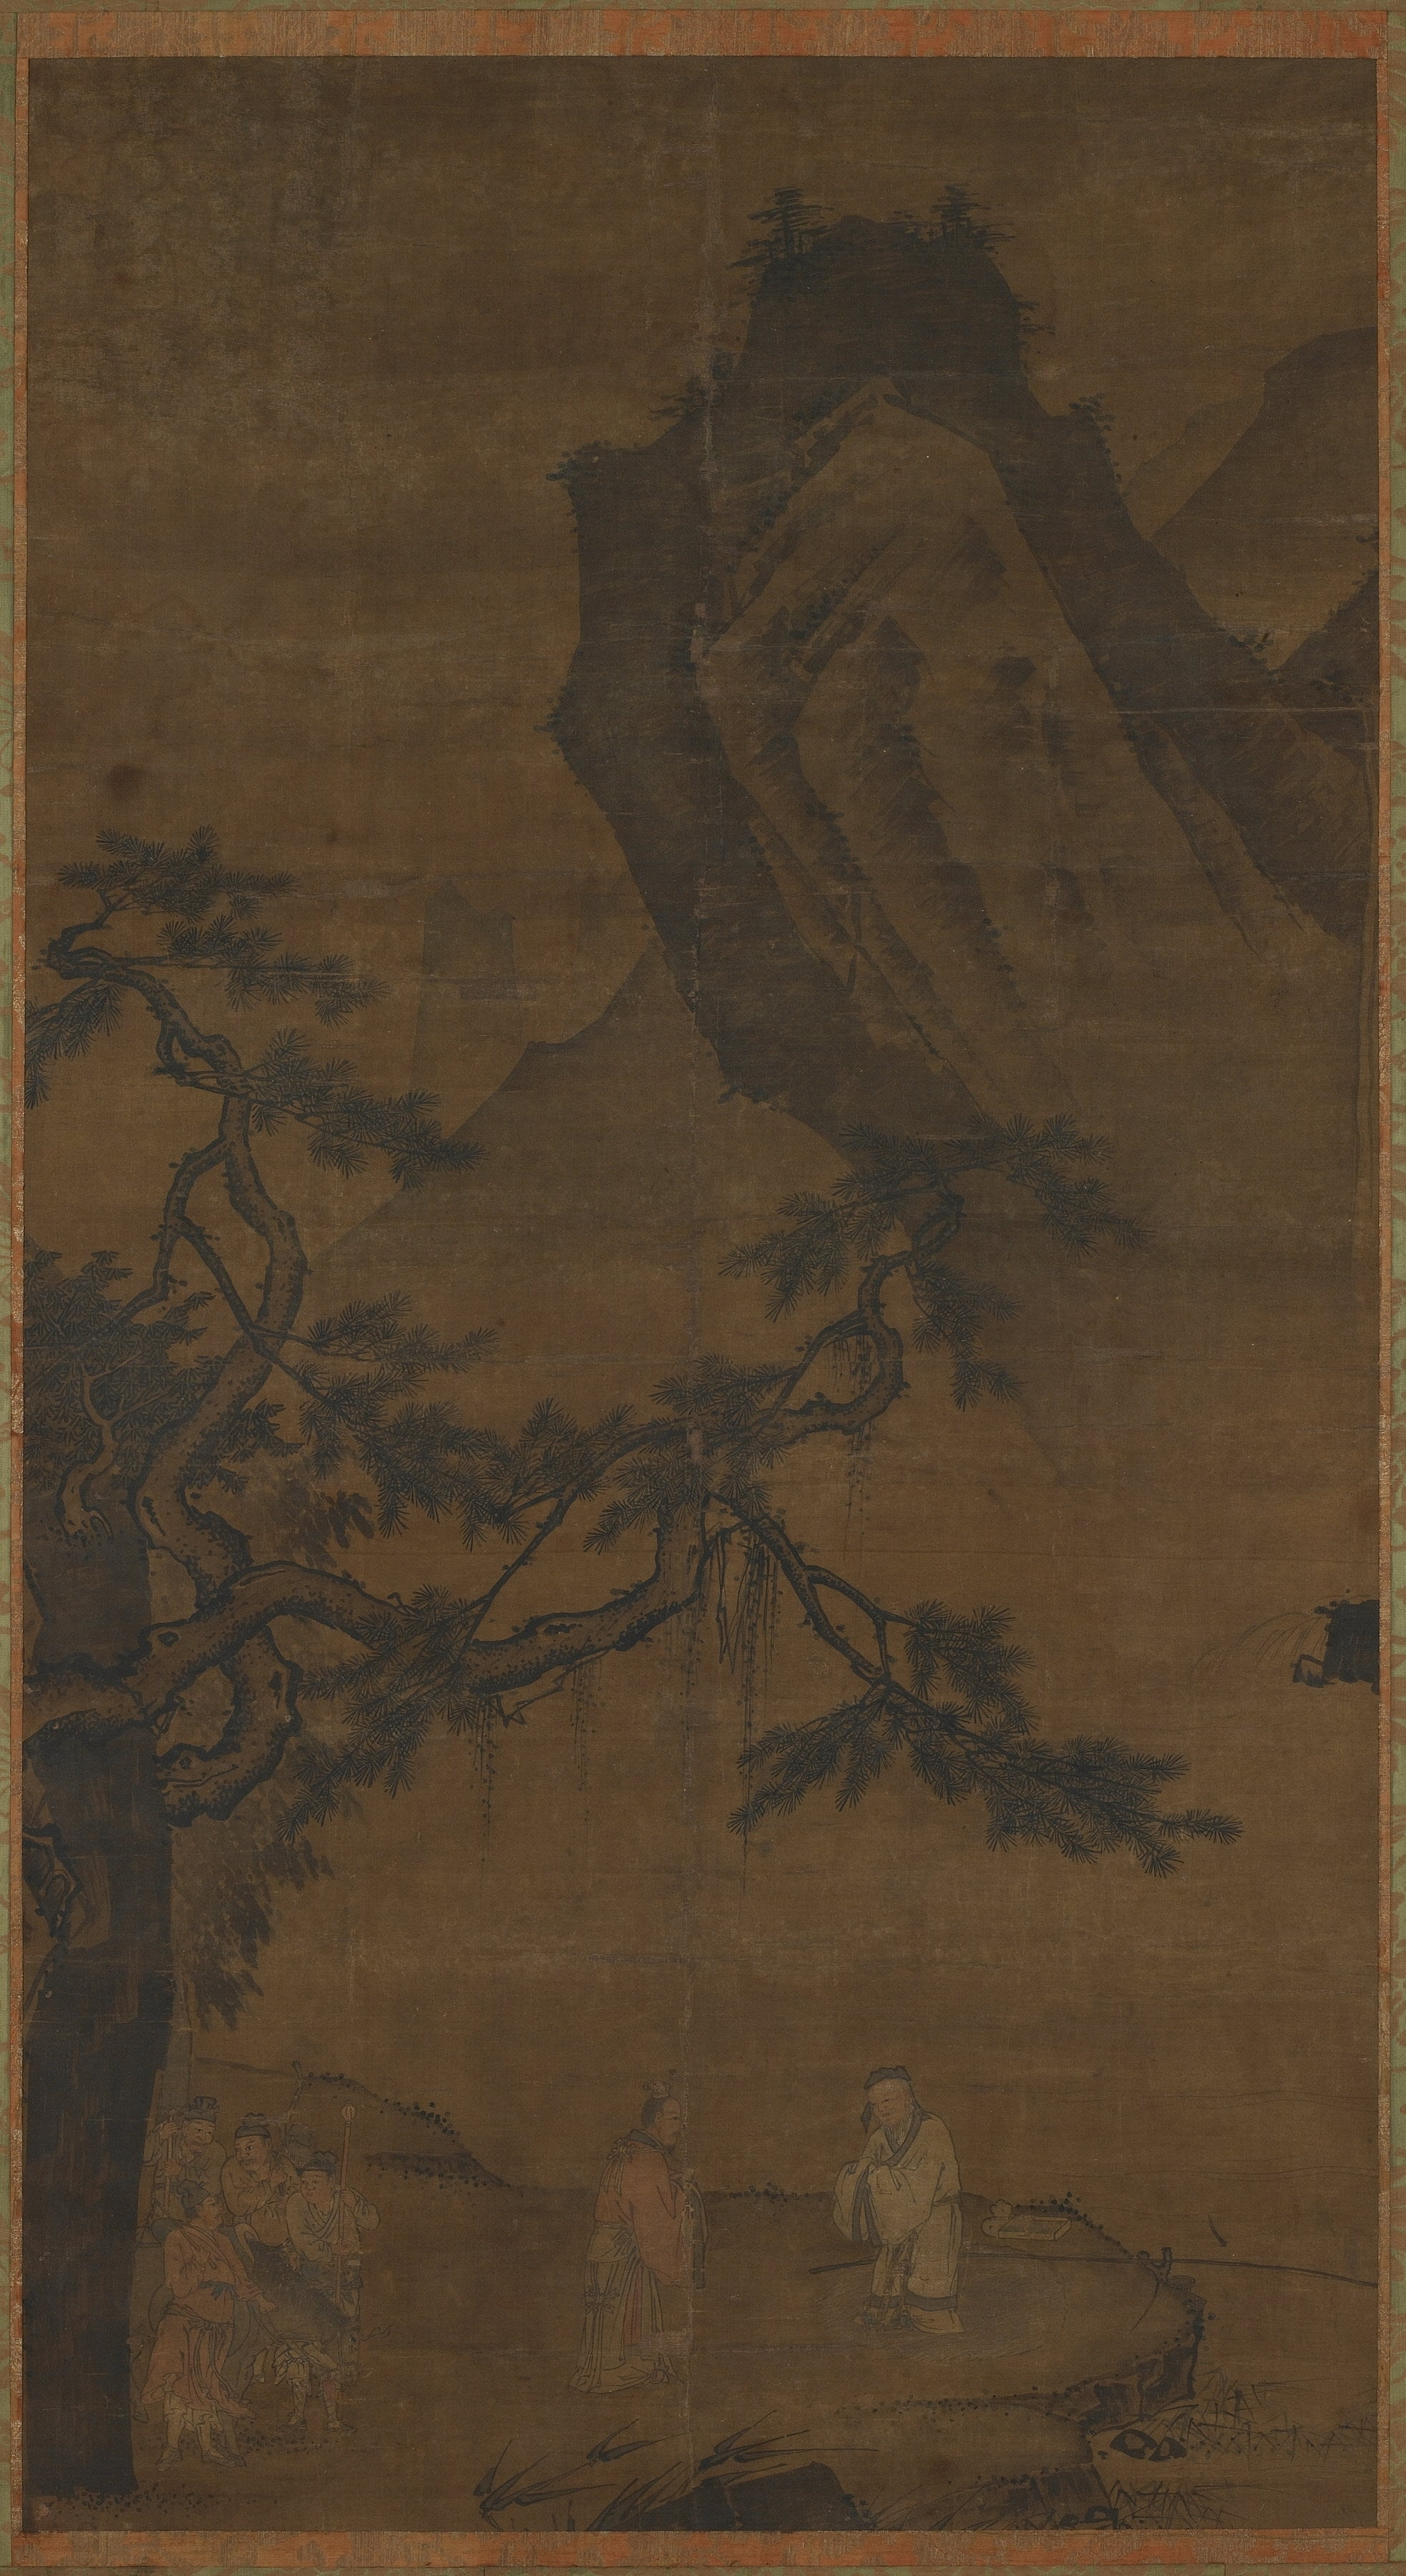 Lit Vertical Conserving Priceless Chinese Paintings Is An Art All Its